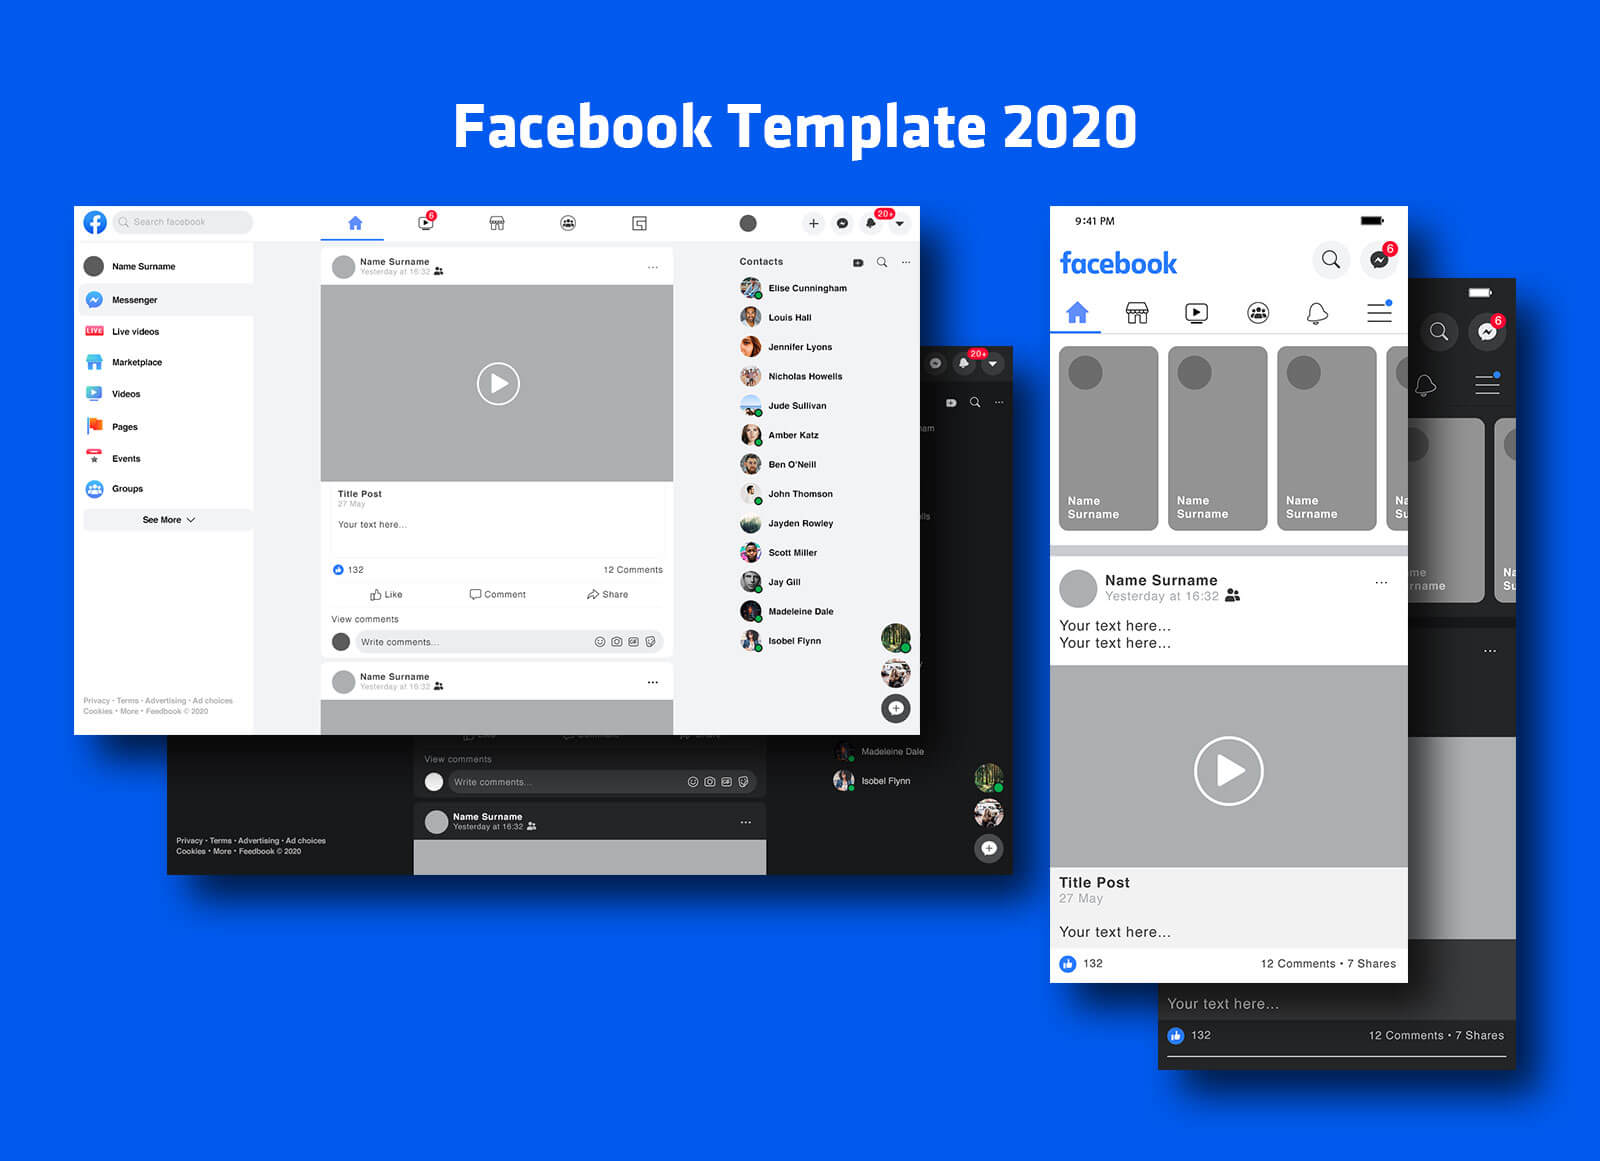 Free Mobile Desktop Facebook Post Feed Template 2020 Mockup Psd Set Good Mockups